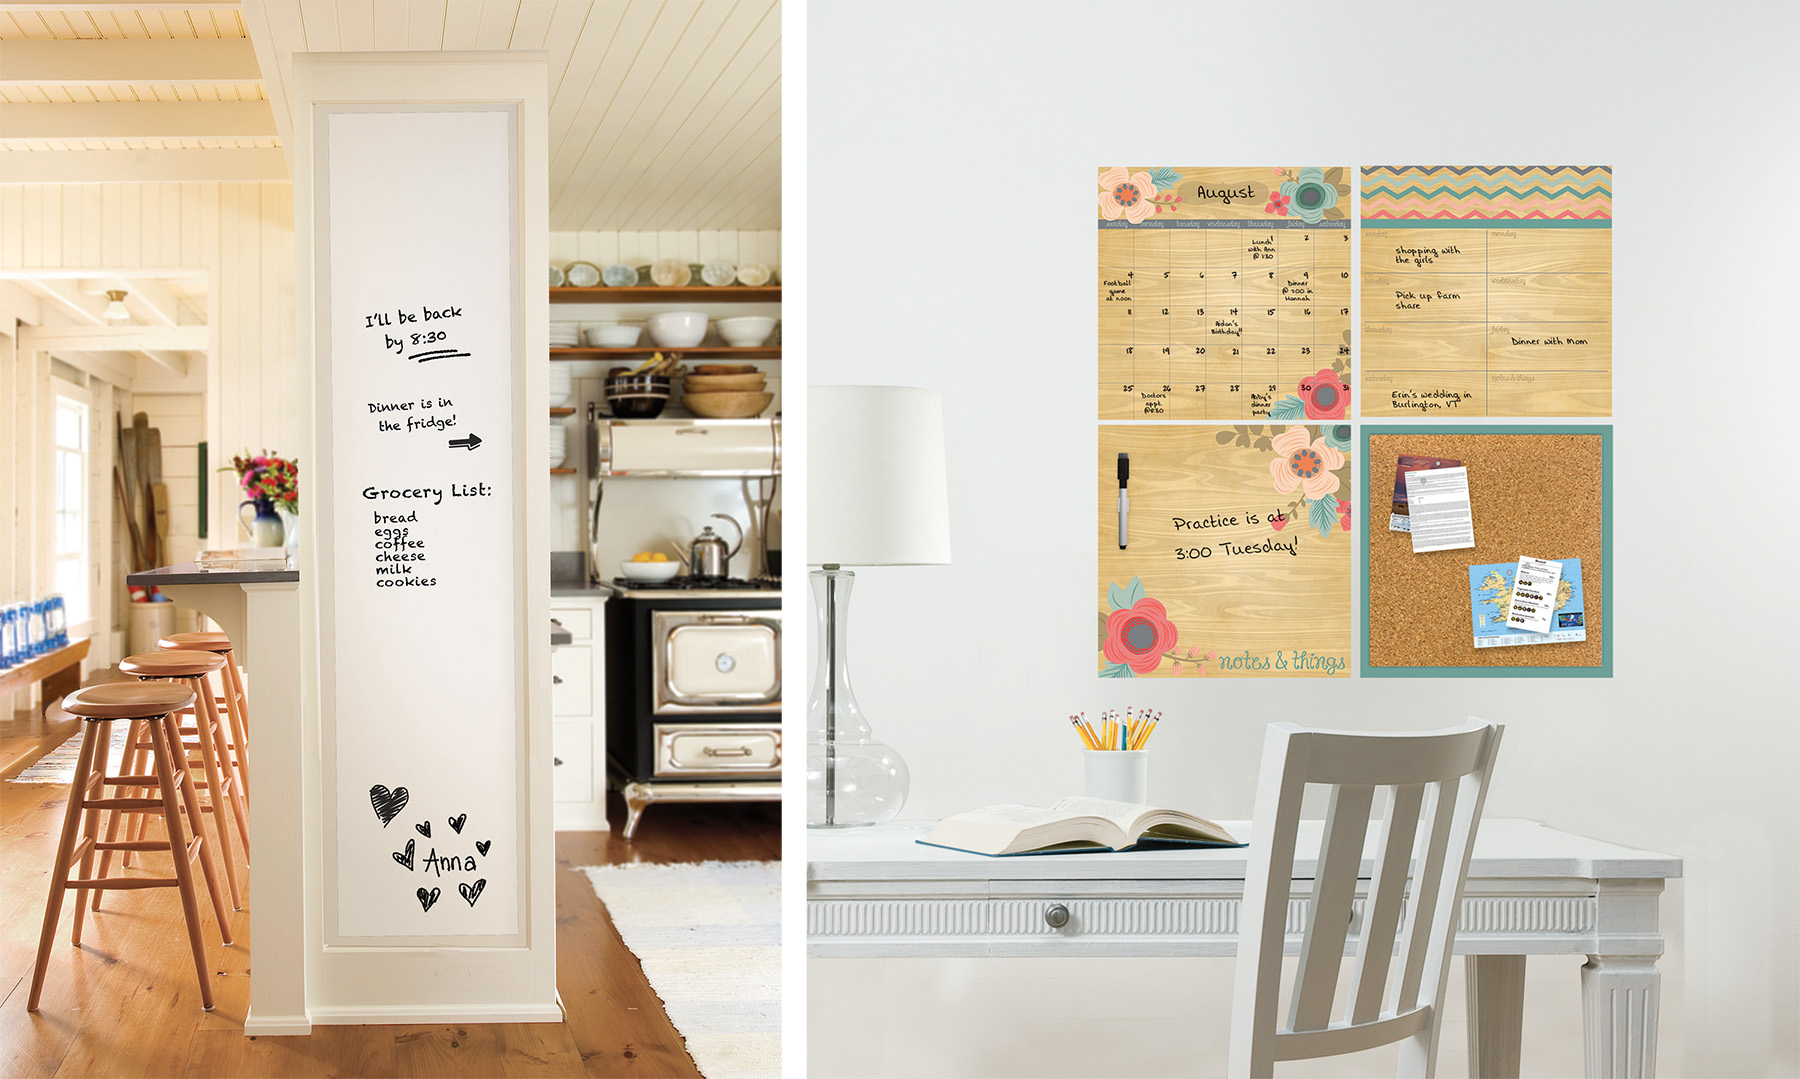 dry erase calendar and message board